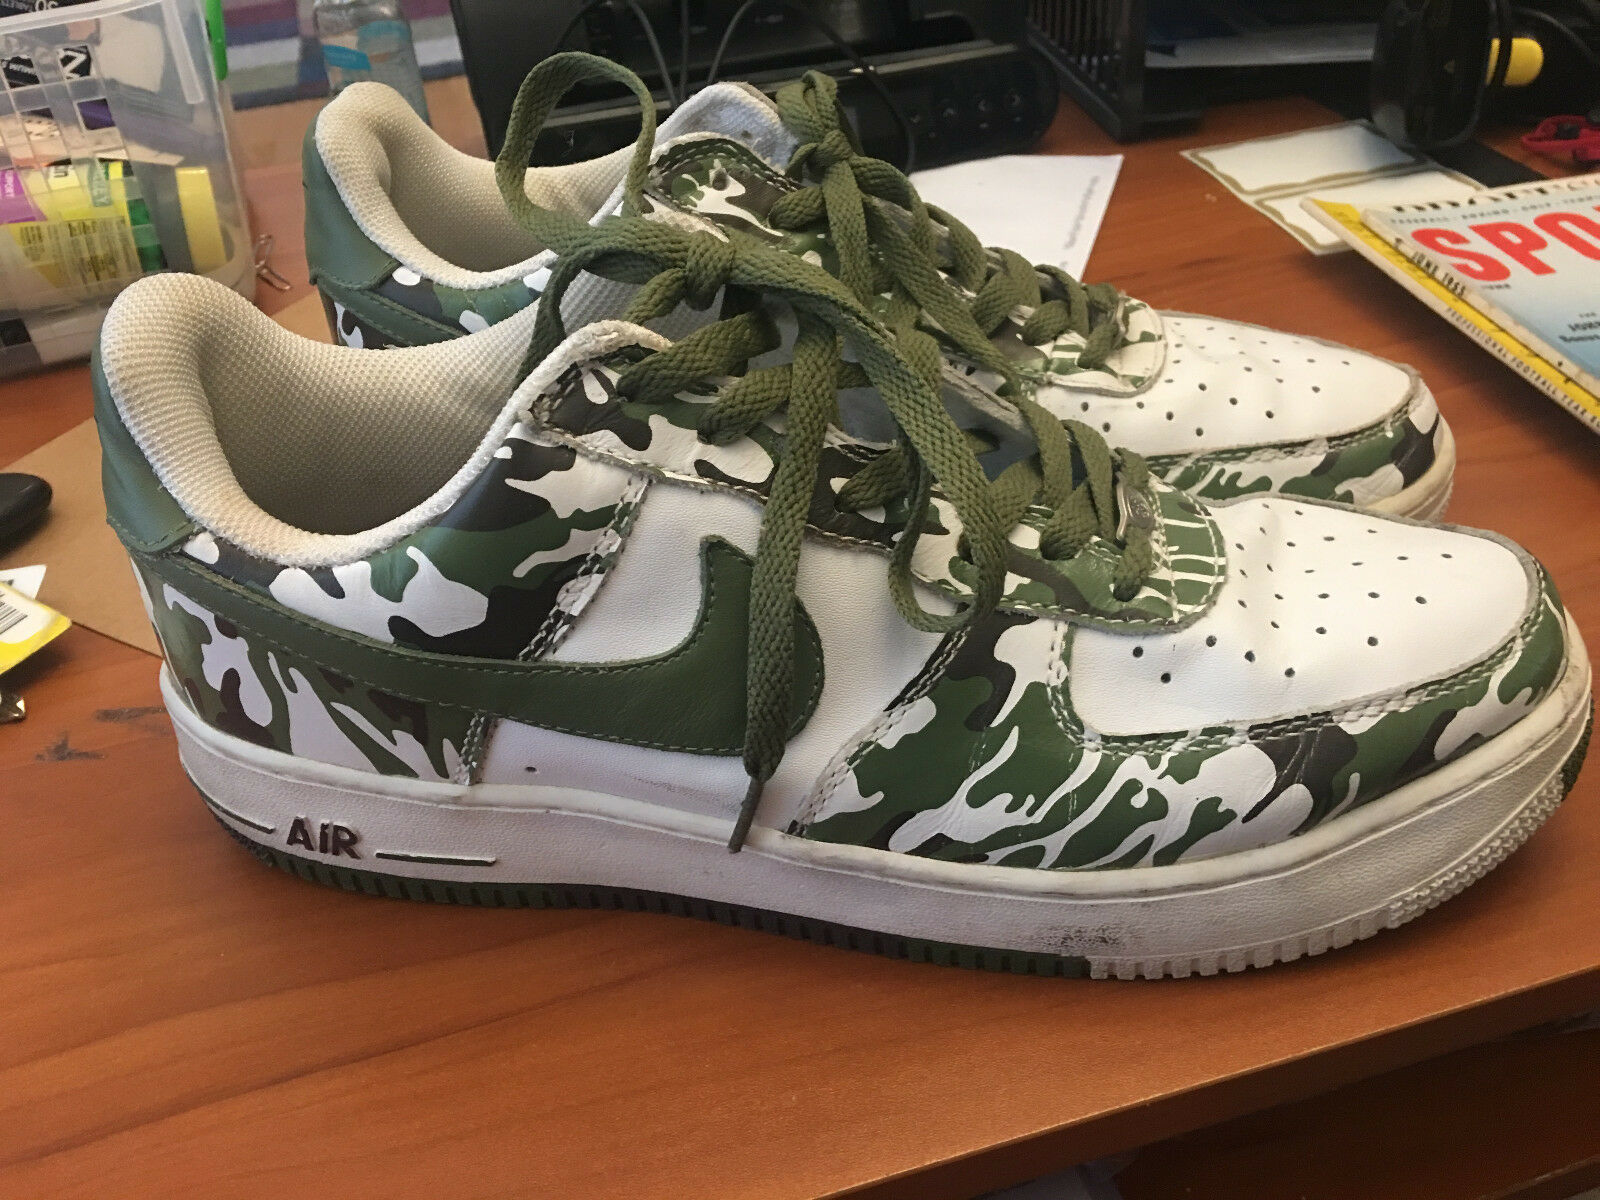 low priced a1fff 1771d NIKE AIR FORCE SHOES MENS SIZE 11 ARMY FATIGUE CAM CAMOUFLAGE 306353-131